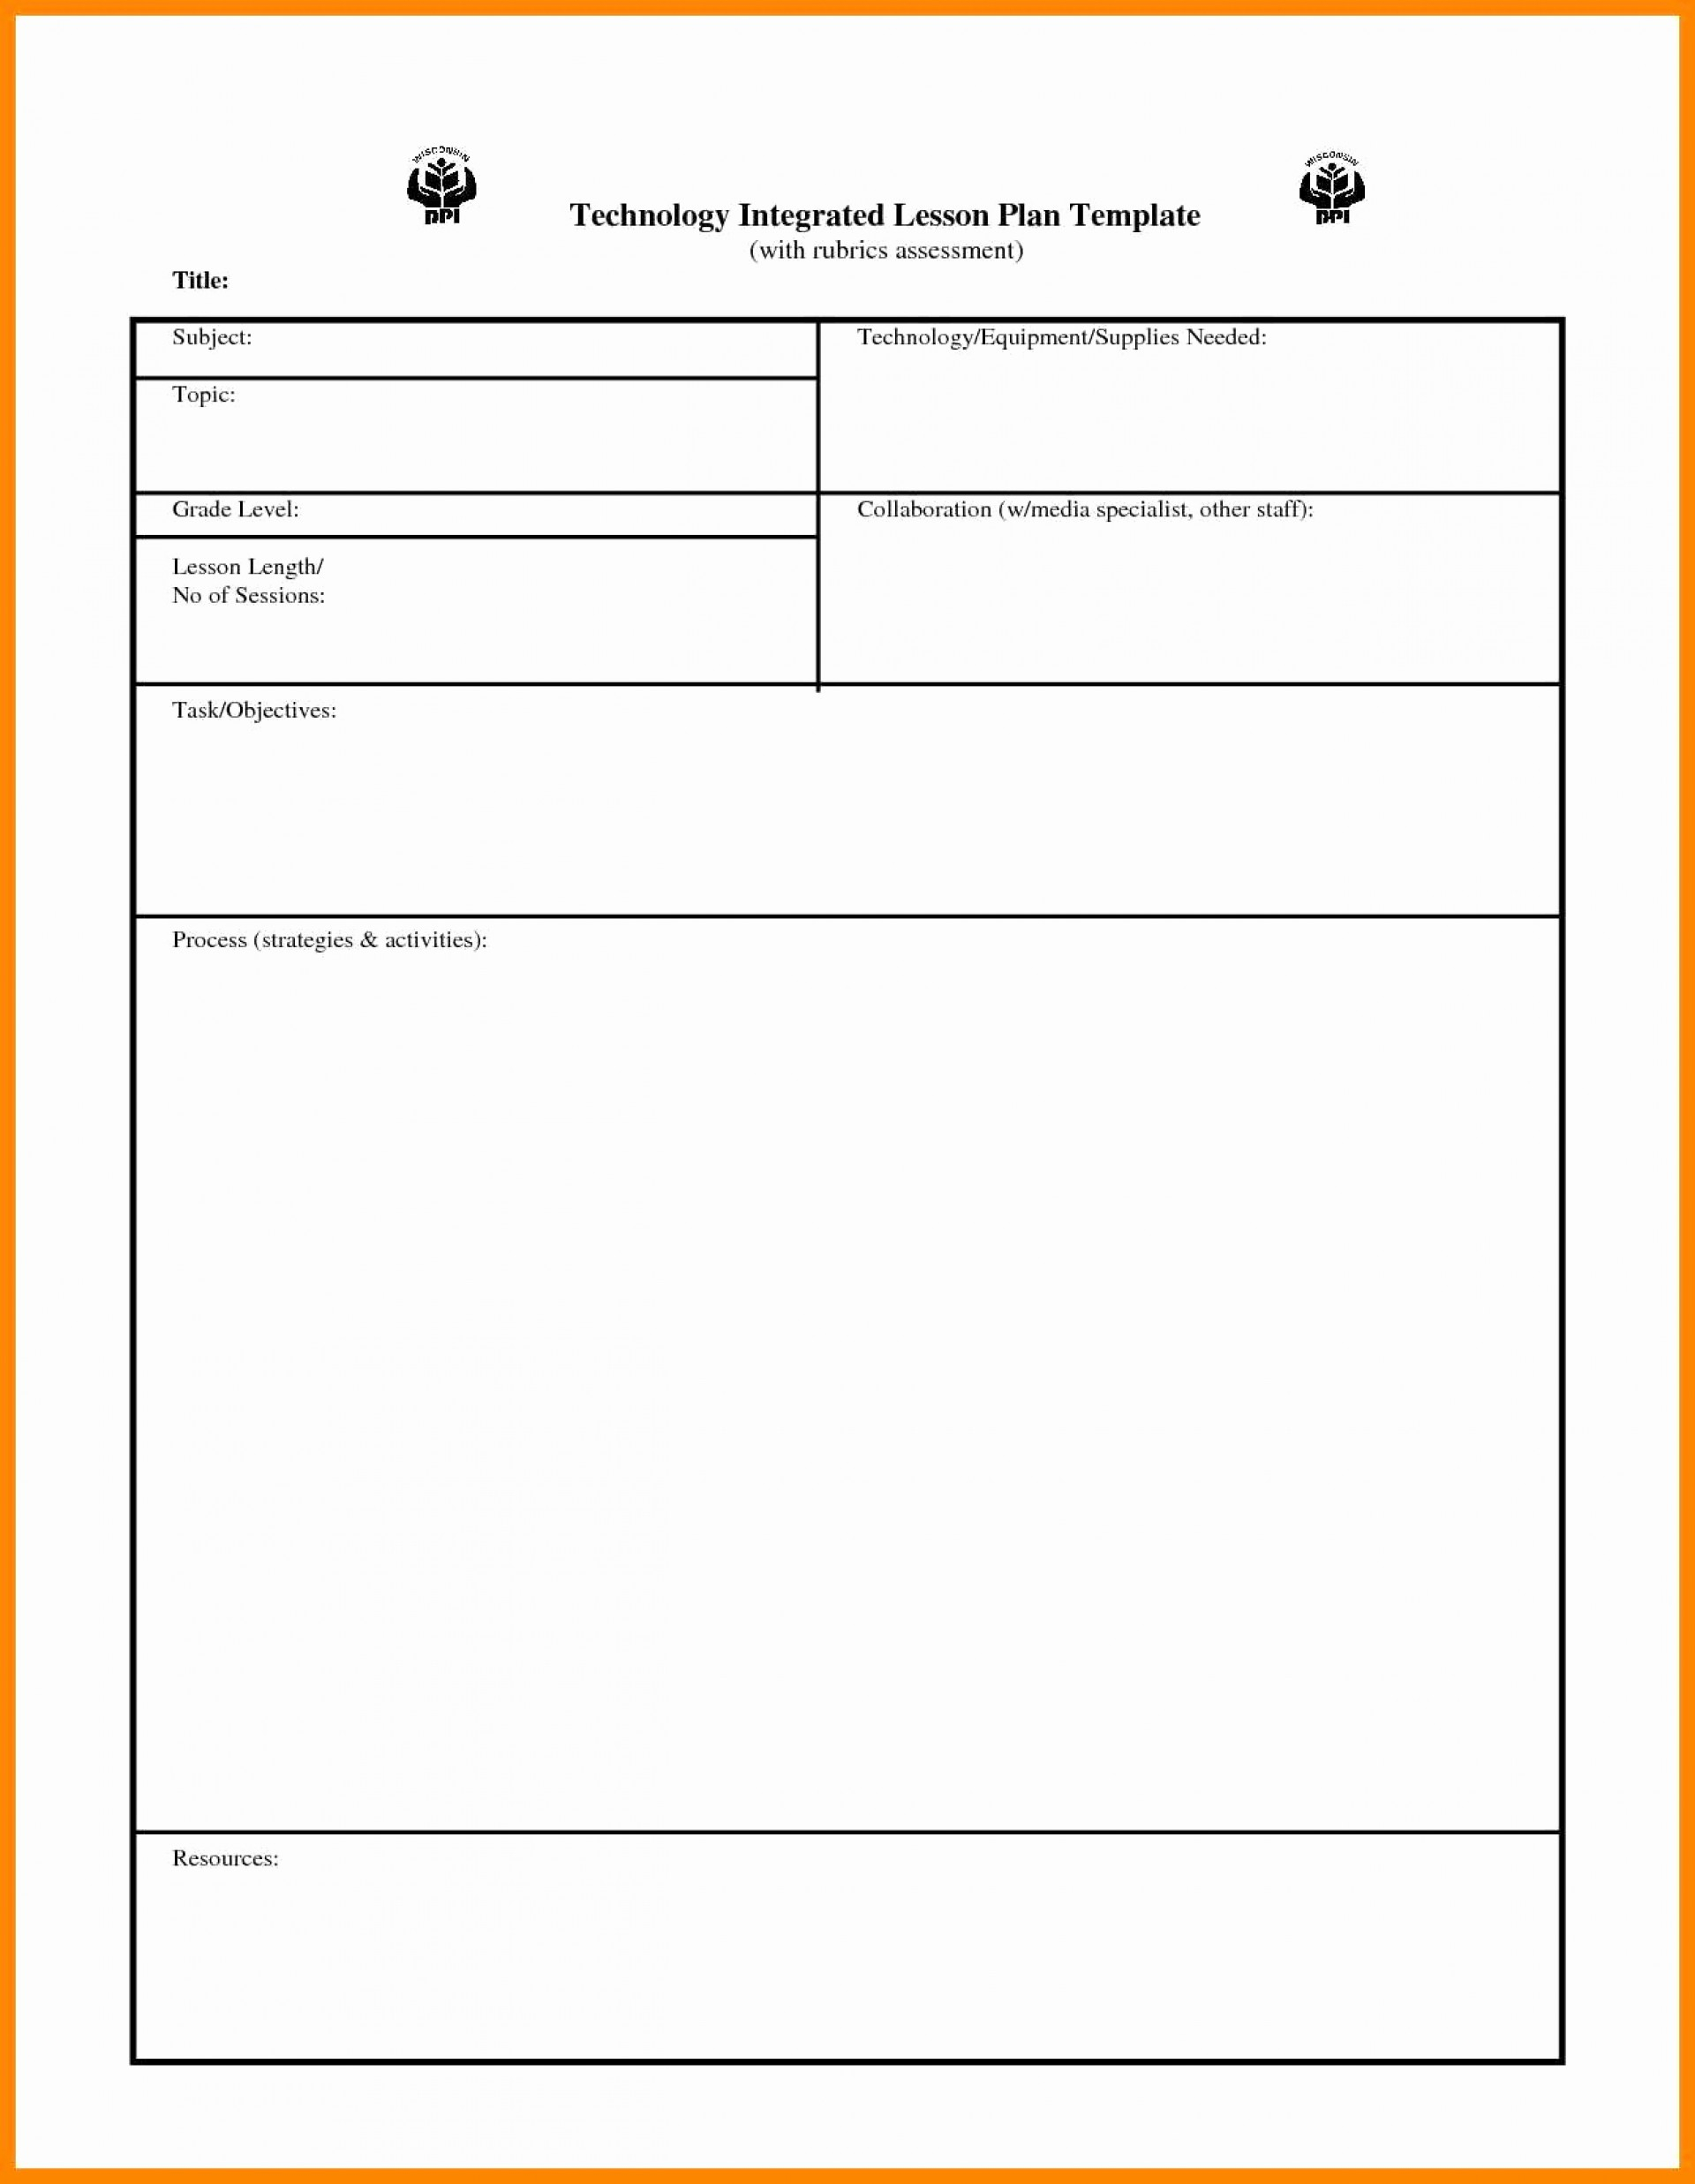 Forex Trading Journal Spreadsheet Intended For 001 Plan Template Forex Trading ~ Tinypetition